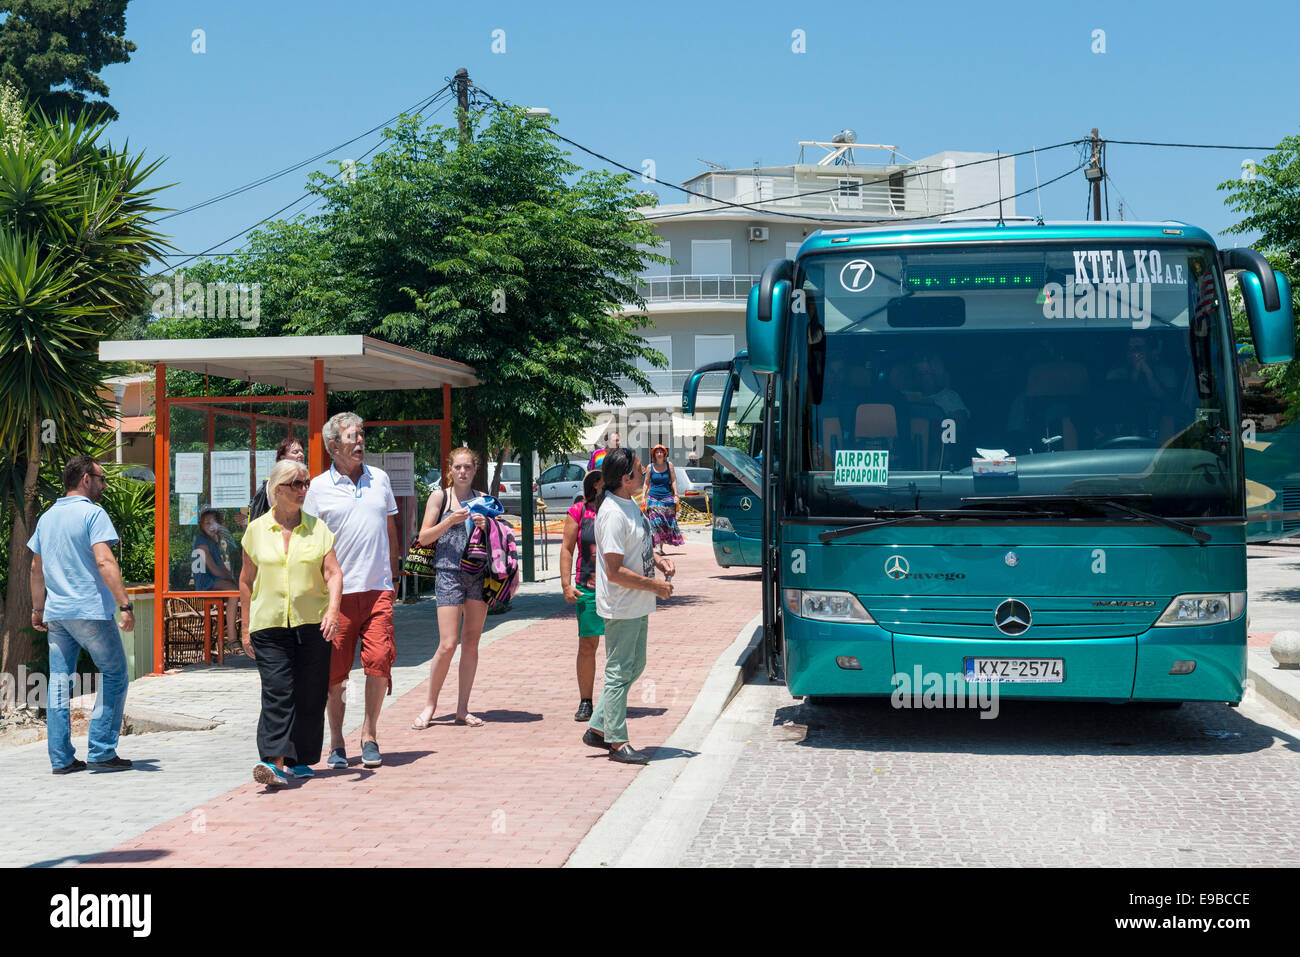 Passengers enter a bus at a bus stop in the town of Kos, island of Kos, Greece Stock Photo